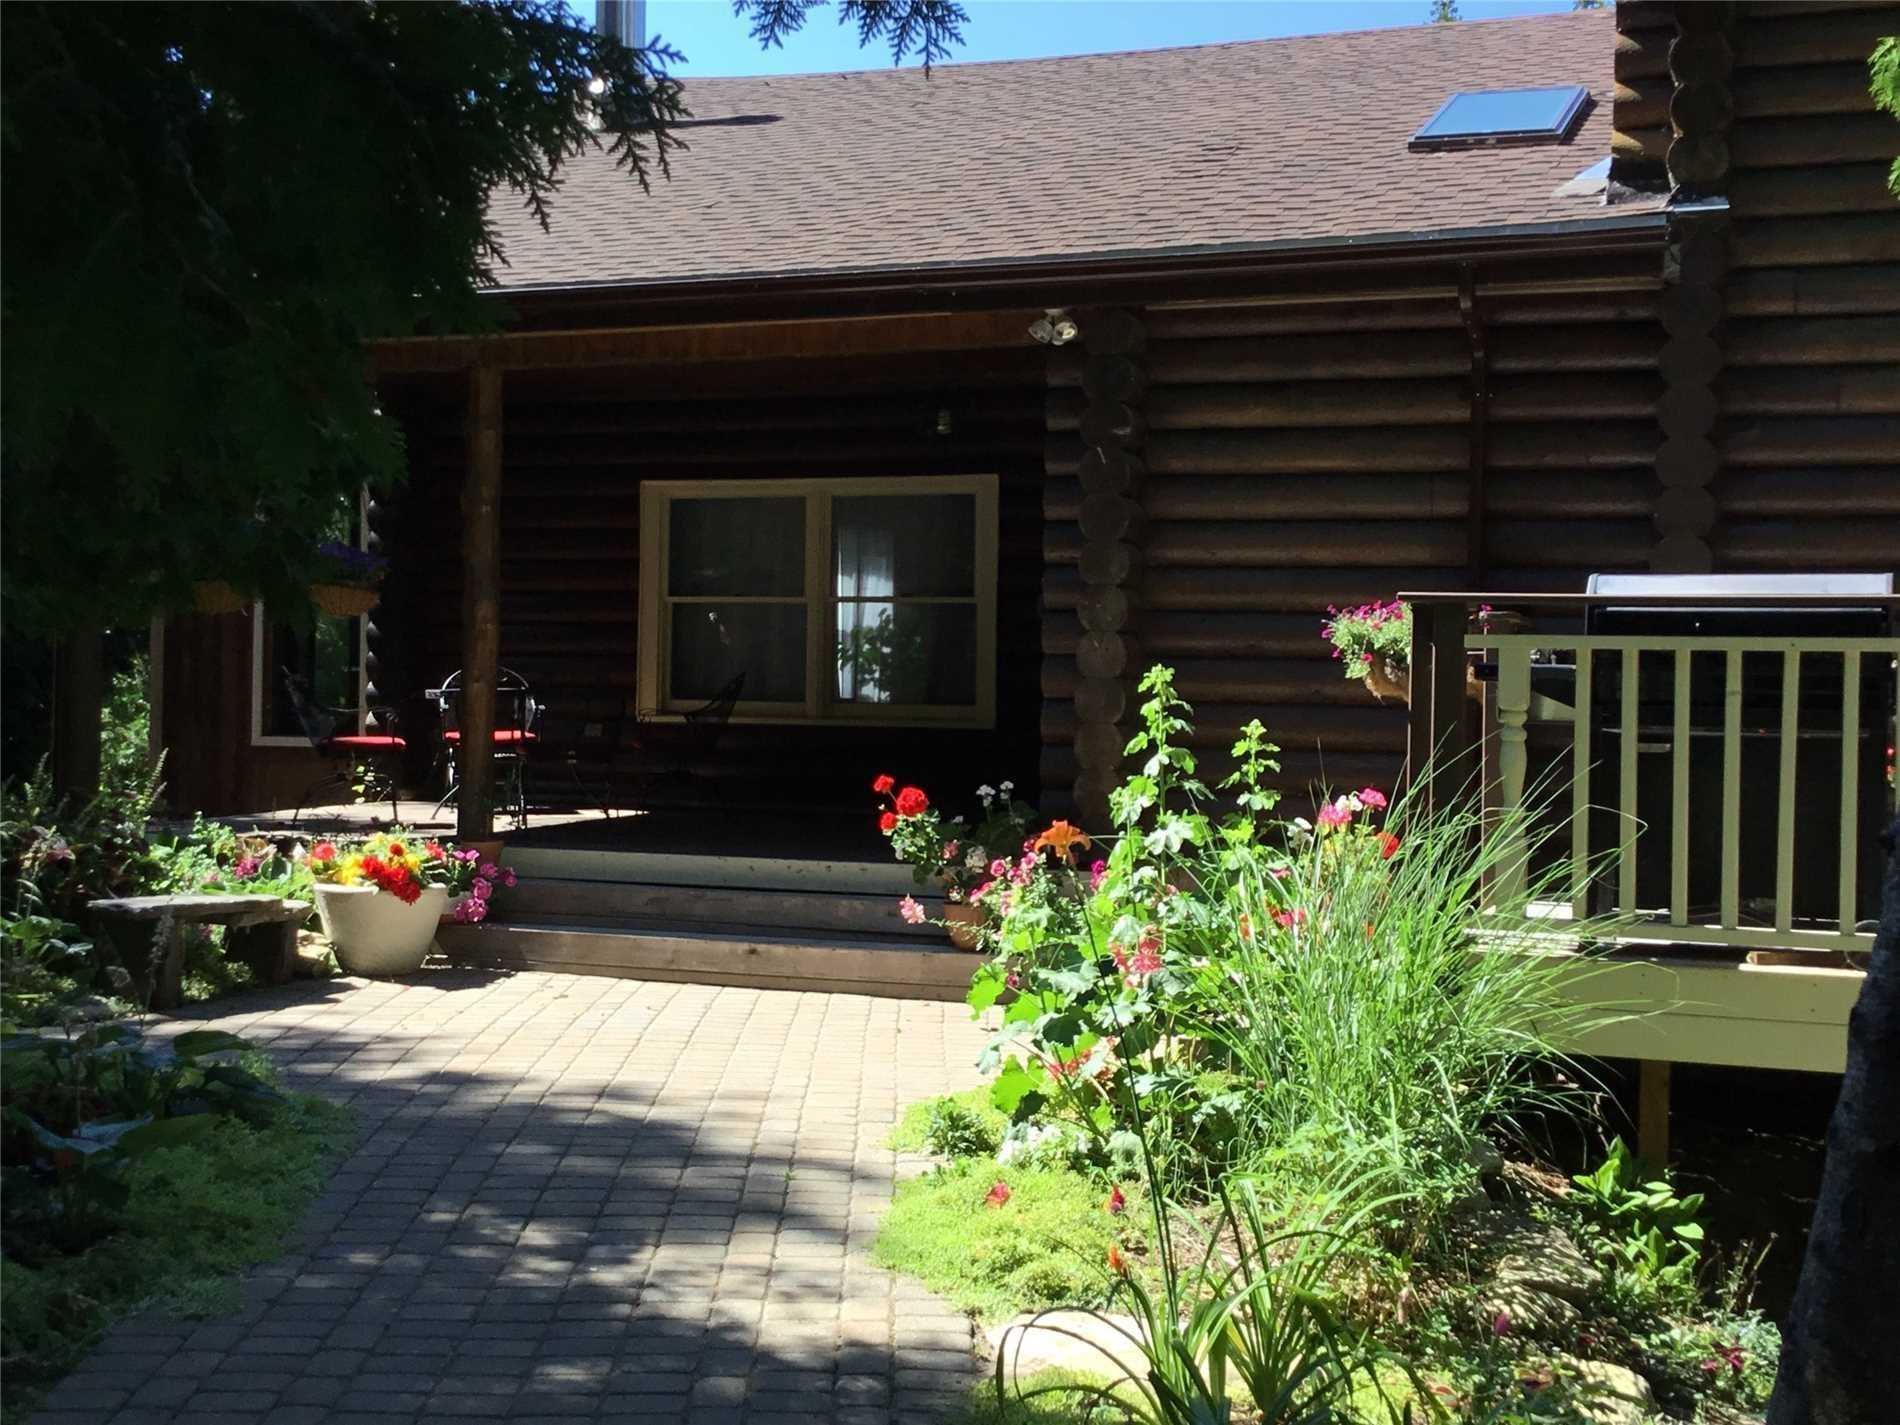 The Mature 3.3 Ac Forest And The Beautiful,Fully Updated In 2016 Log Home Offers Peace And Tranquility,Just 2 Minutes From Lake Huron Where You Can Experience The Famous Huron Sunsets ! New Roof, New Hardwood Floors, New Everything ! Partially Finished Basement With Separate Entrance, In-Law Potential.The 30X35 Great Room Boasts 16' Ceilings With Skylights,New Deck From Solarium. Successful B@B Business,Hike From Your Own Backyard, Nature Lovers Paradise!